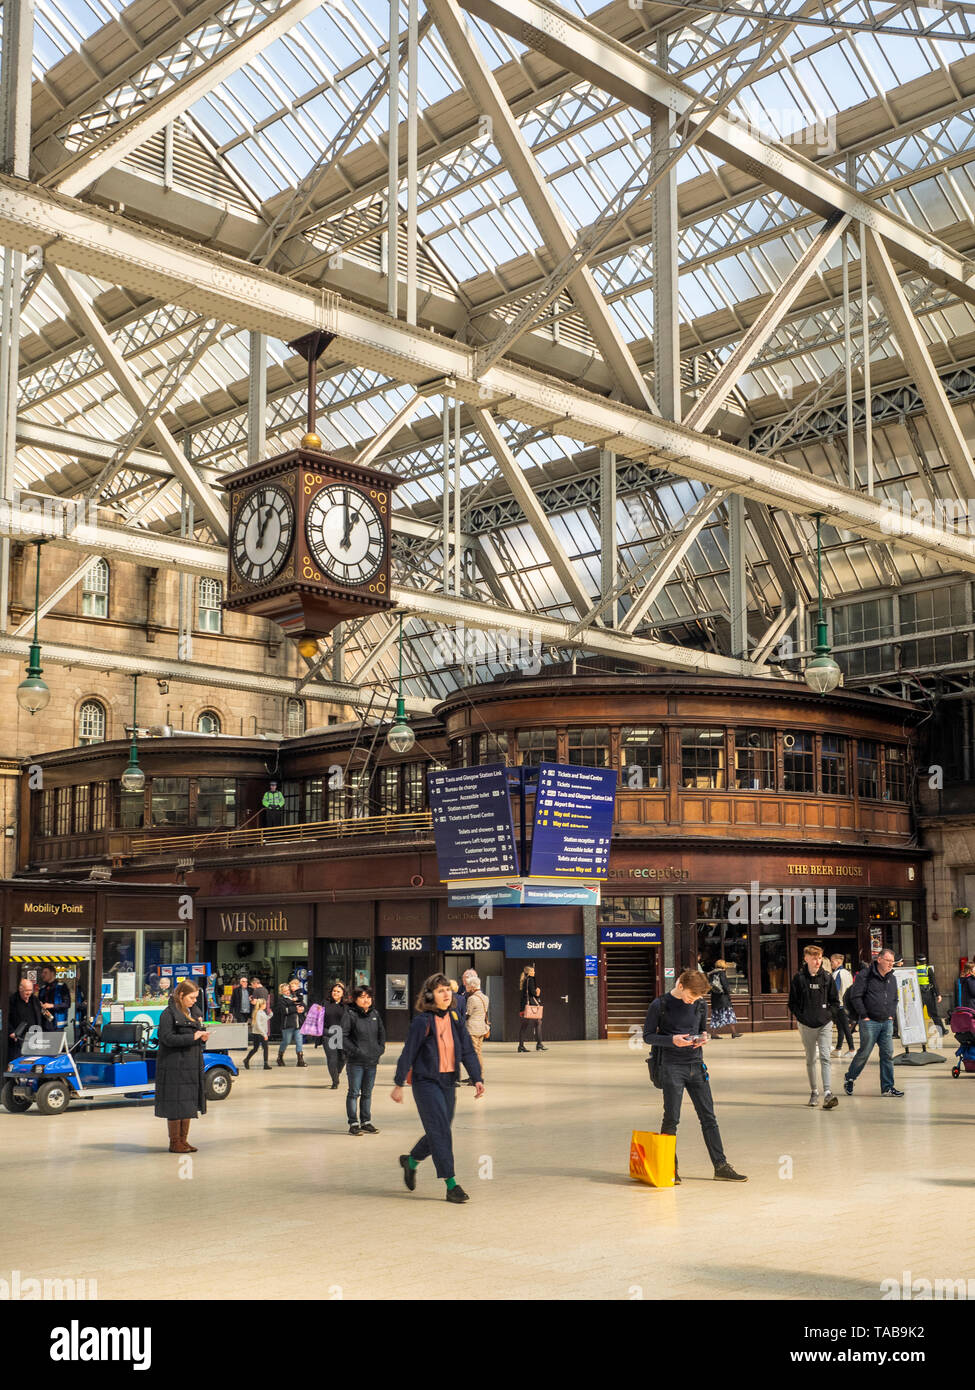 Glasgow Central Station, Scotland, United Kingdom - Stock Image